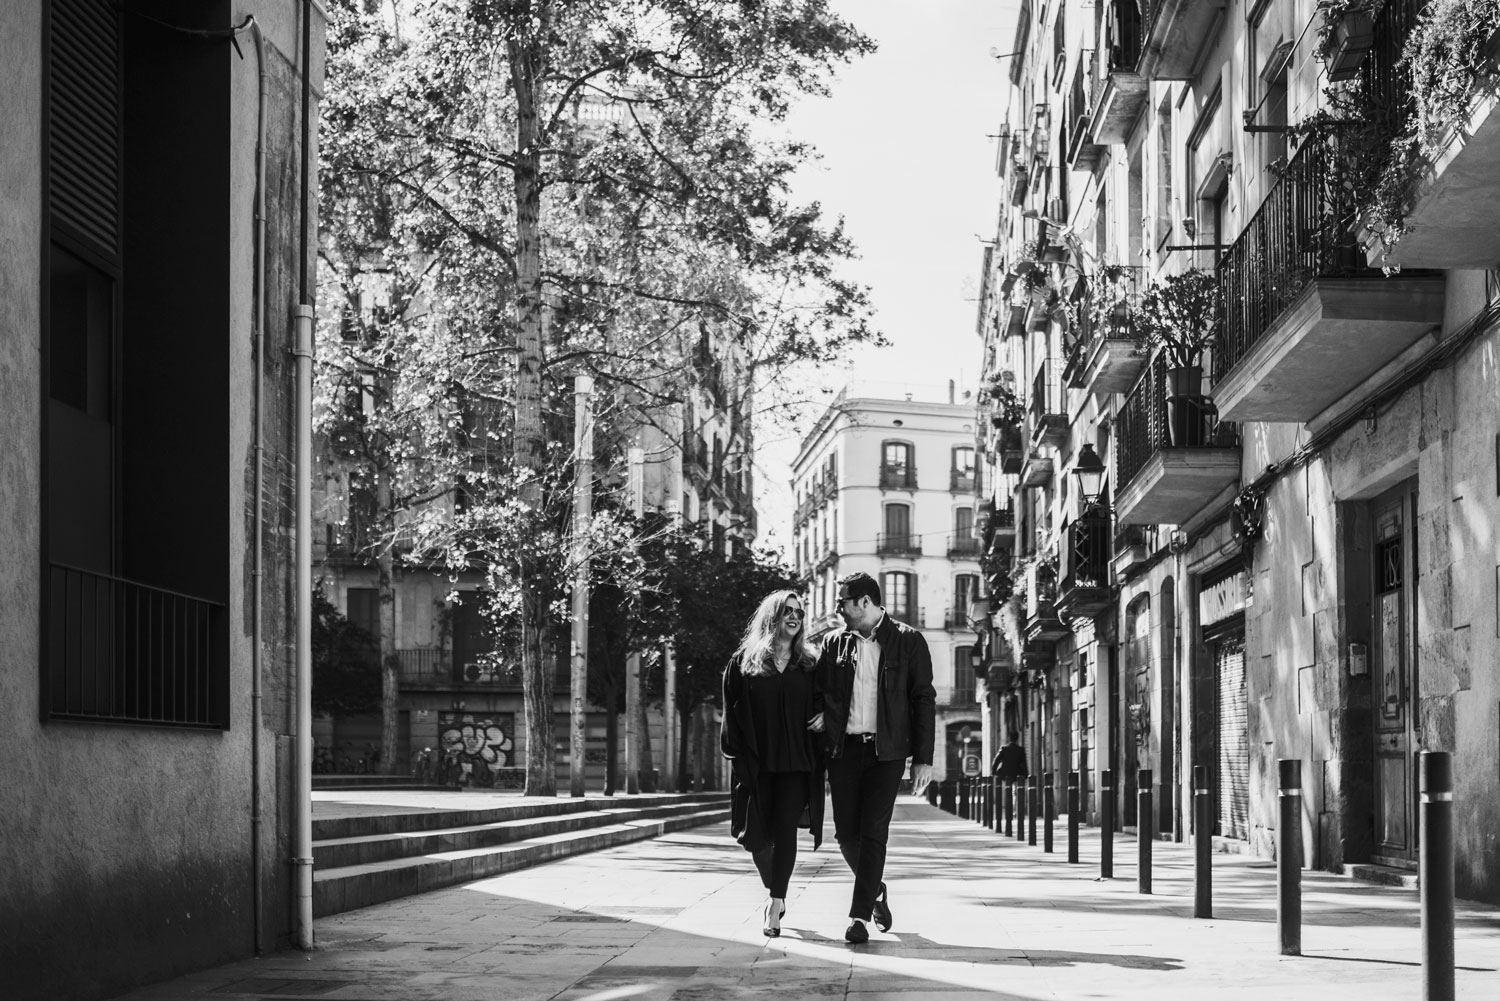 Black and white photo Michelle Durpetti and Collin Pierson engagement photos in Barcelona, Spain